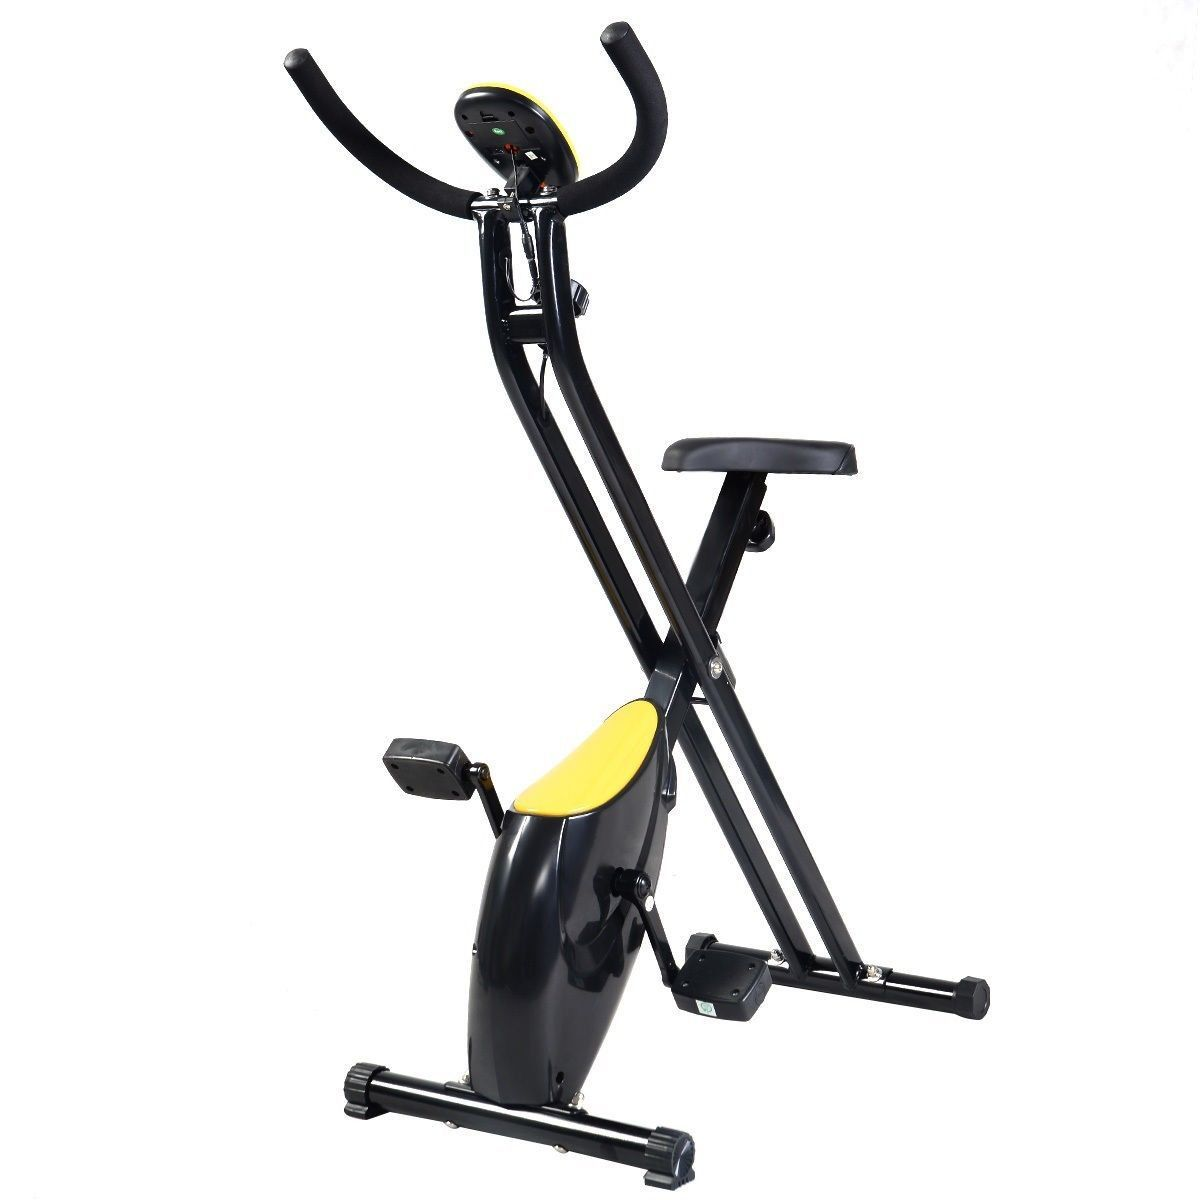 Home Exercise Equipment Bikes: Foldable Exercise Bike Compact Indoor Cycling Home Workout